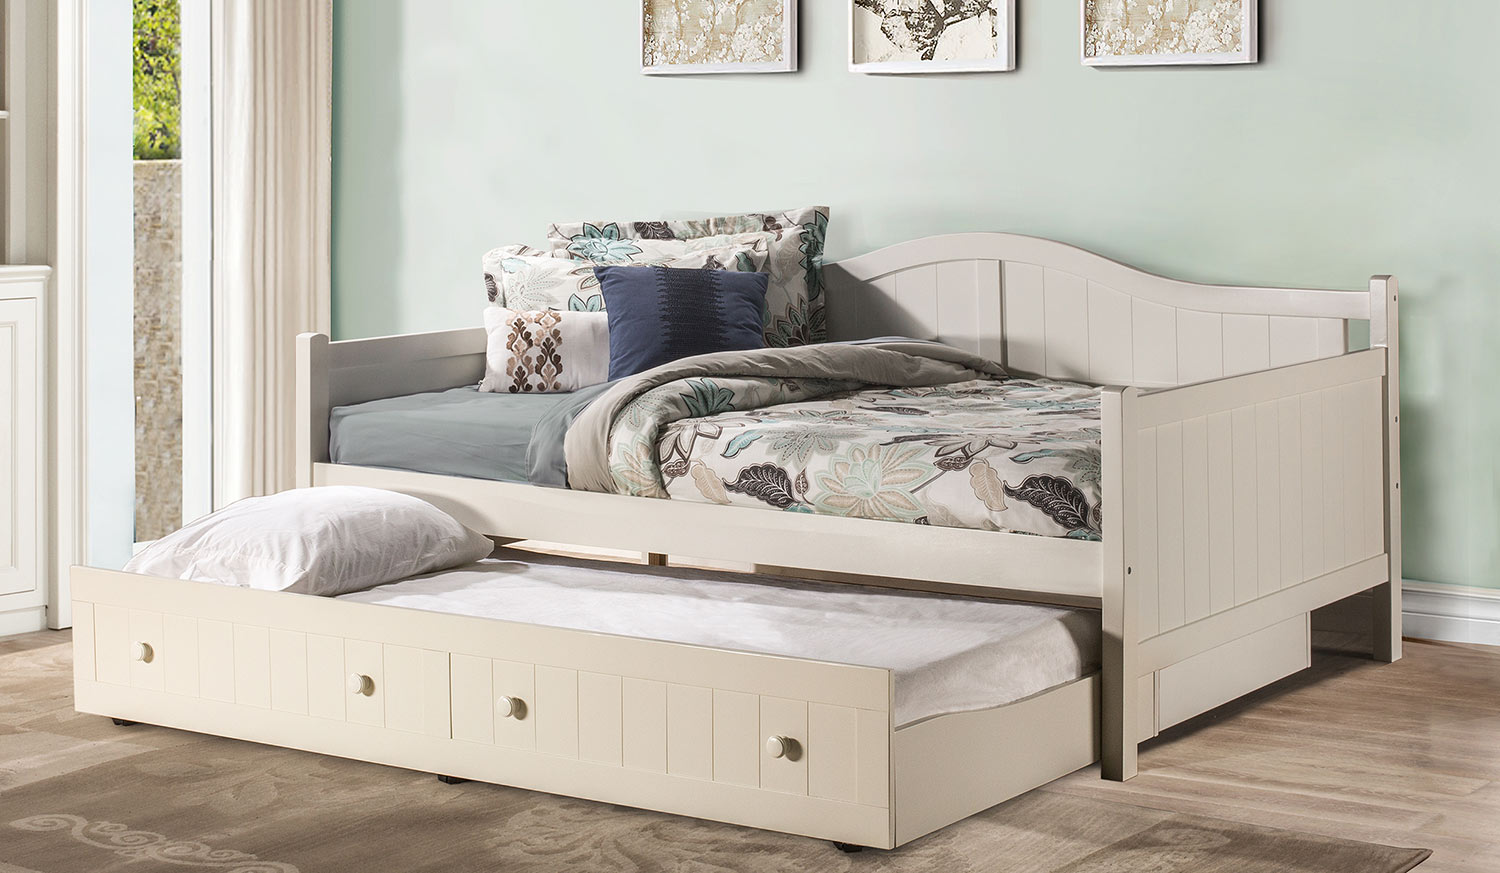 Hillsdale Staci Daybed with Trundle - Full - White